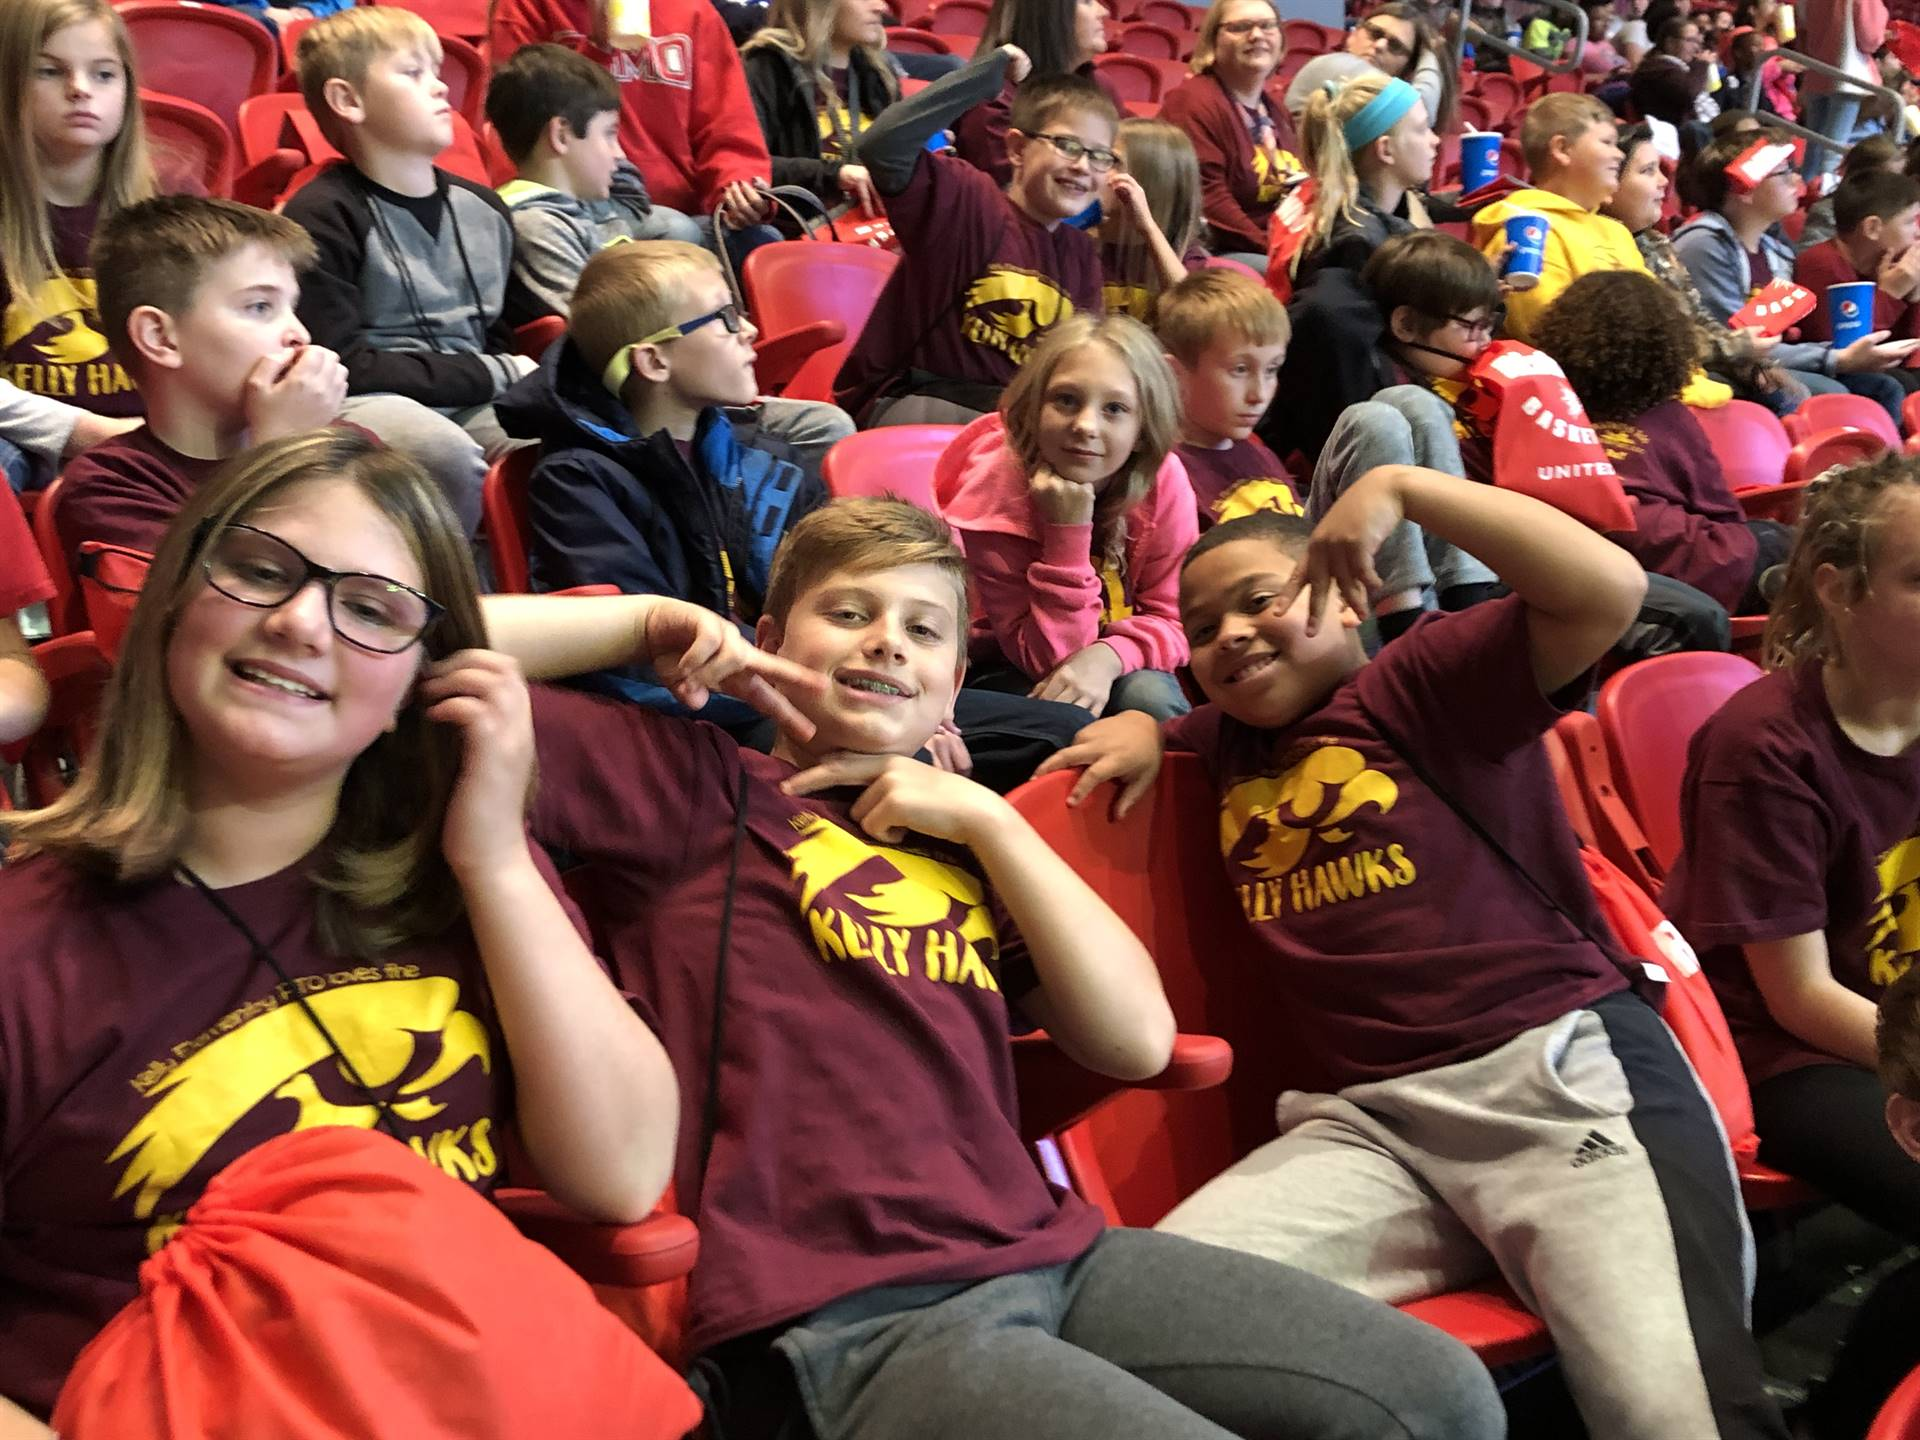 We had a blast rooting on the Redhawks!